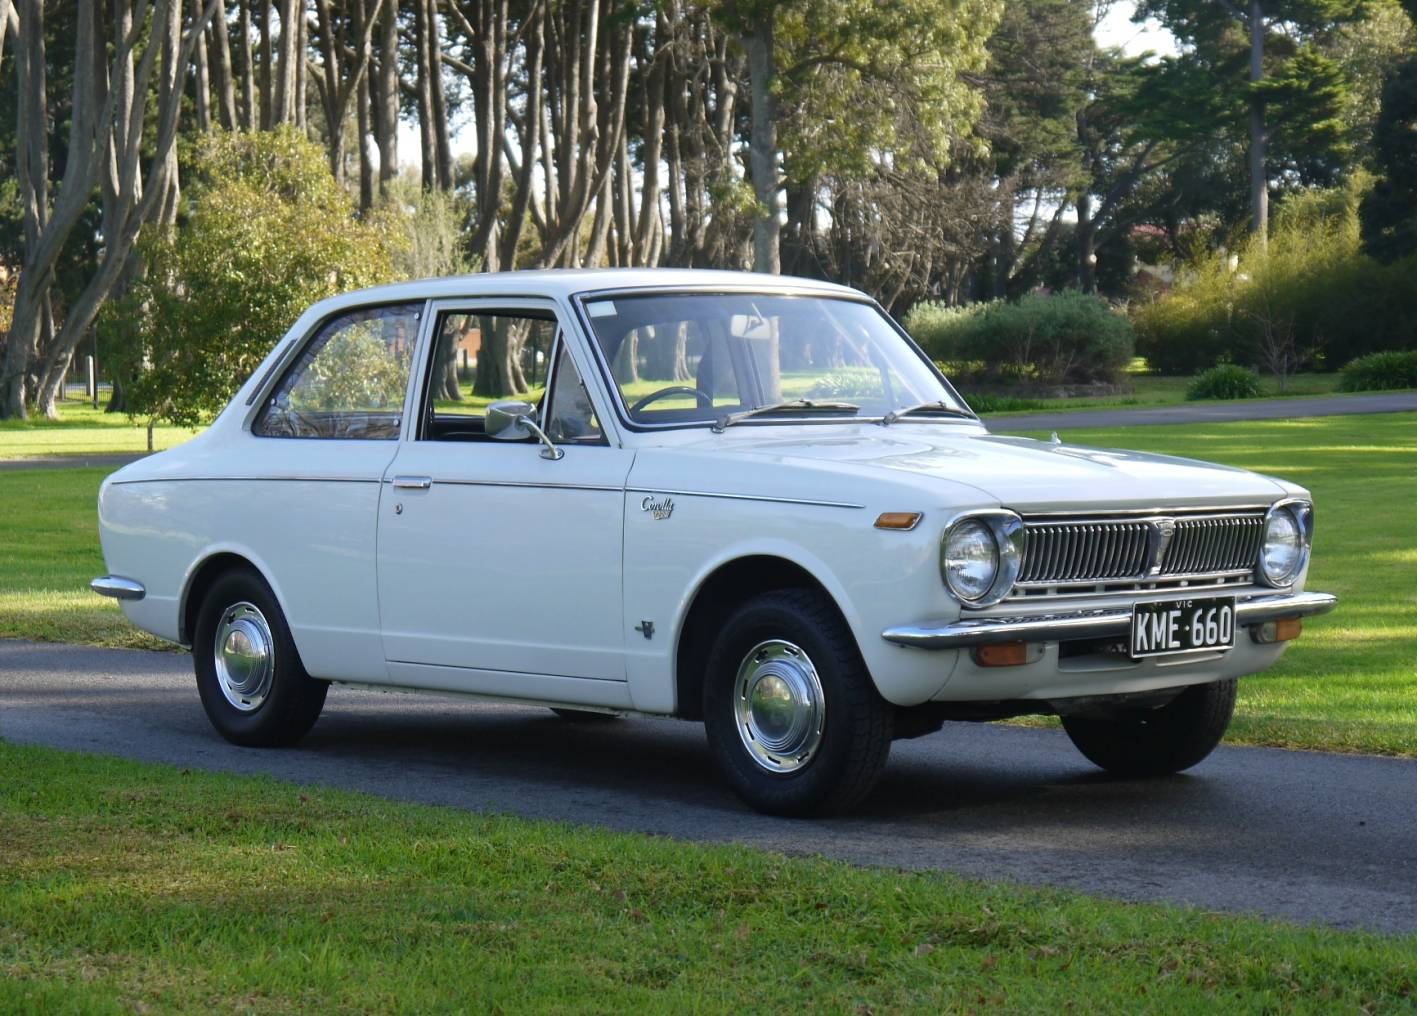 1970 toyota corolla spring classic auction. Black Bedroom Furniture Sets. Home Design Ideas